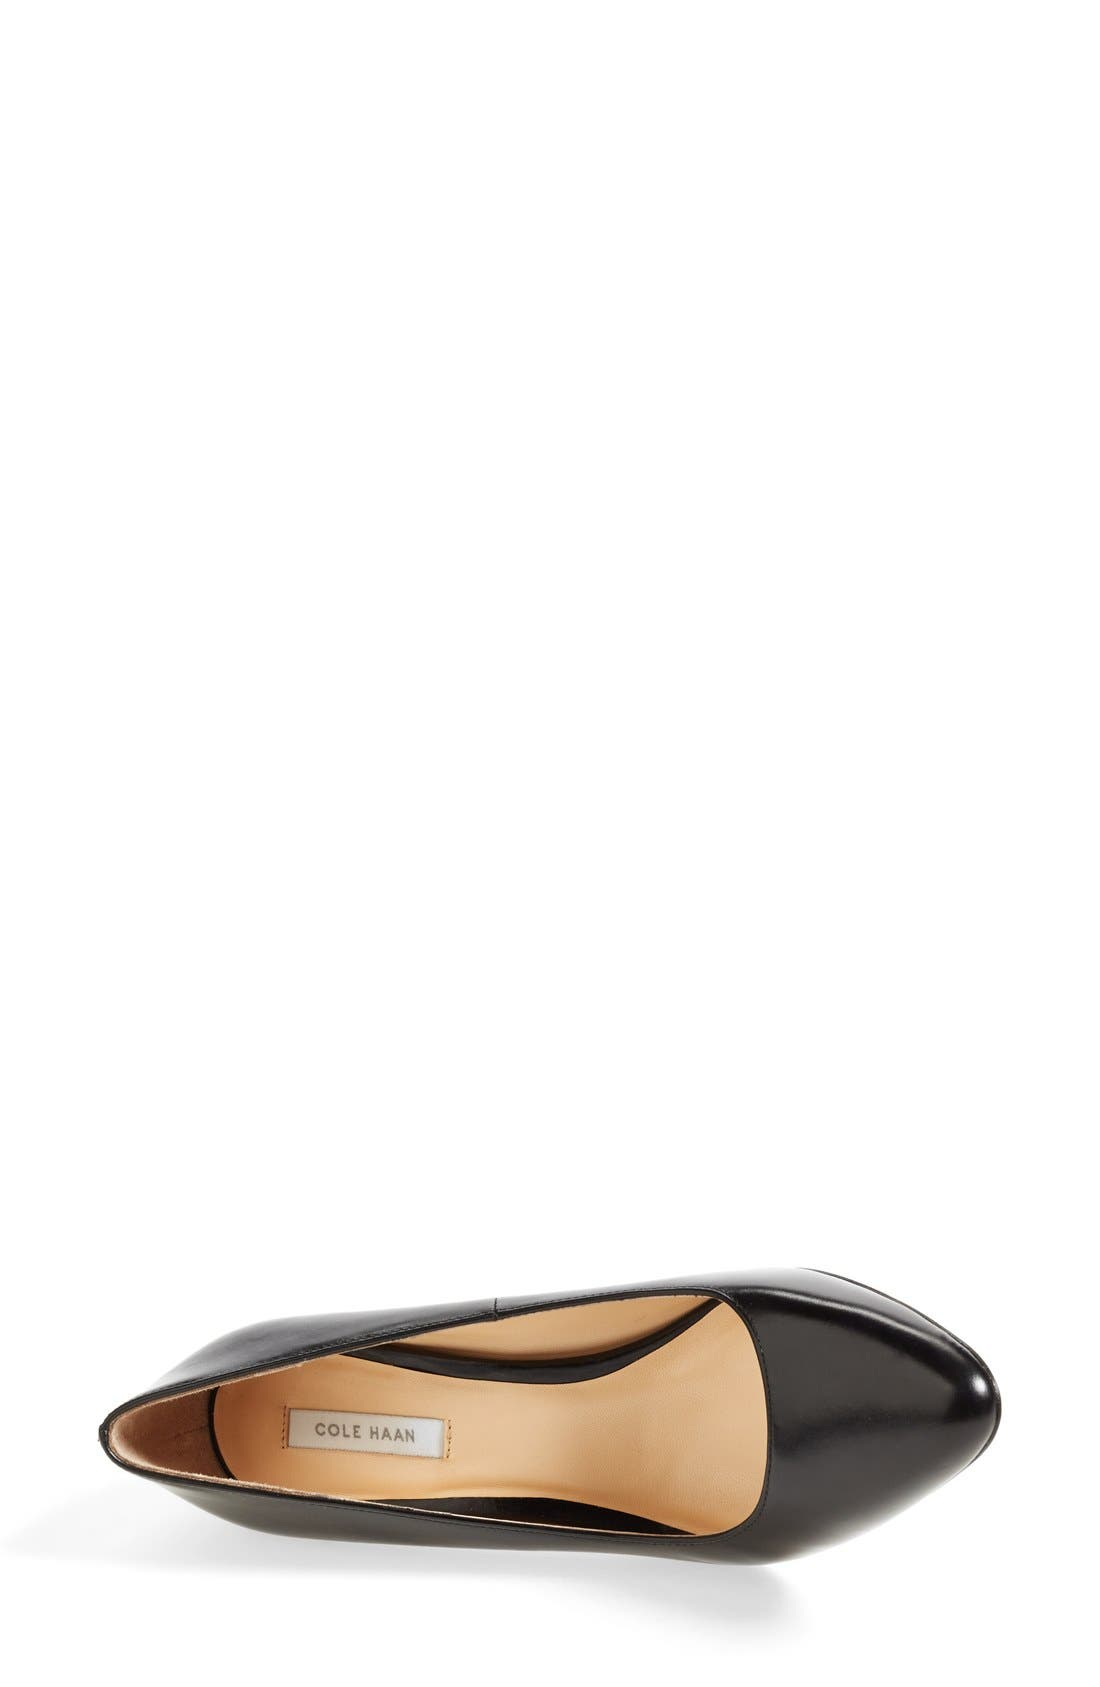 COLE HAAN,                             'Bethany' Leather Pump,                             Alternate thumbnail 3, color,                             001